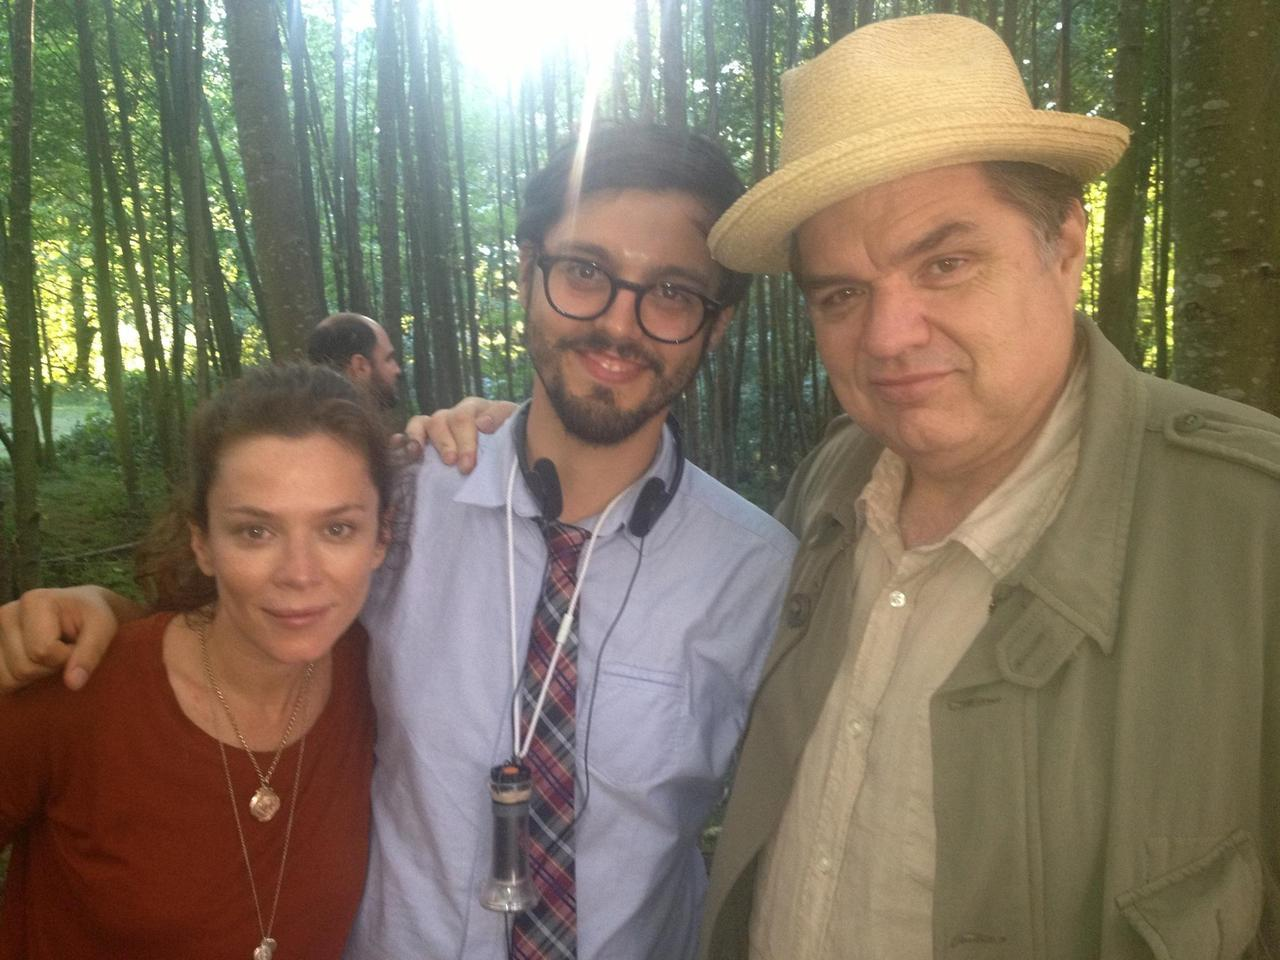 Me, Anna Friel, and Oliver Platt on Oliver's last day of shooting. More photos of the talented cast of  The Cleanse  on my  facebook page here .